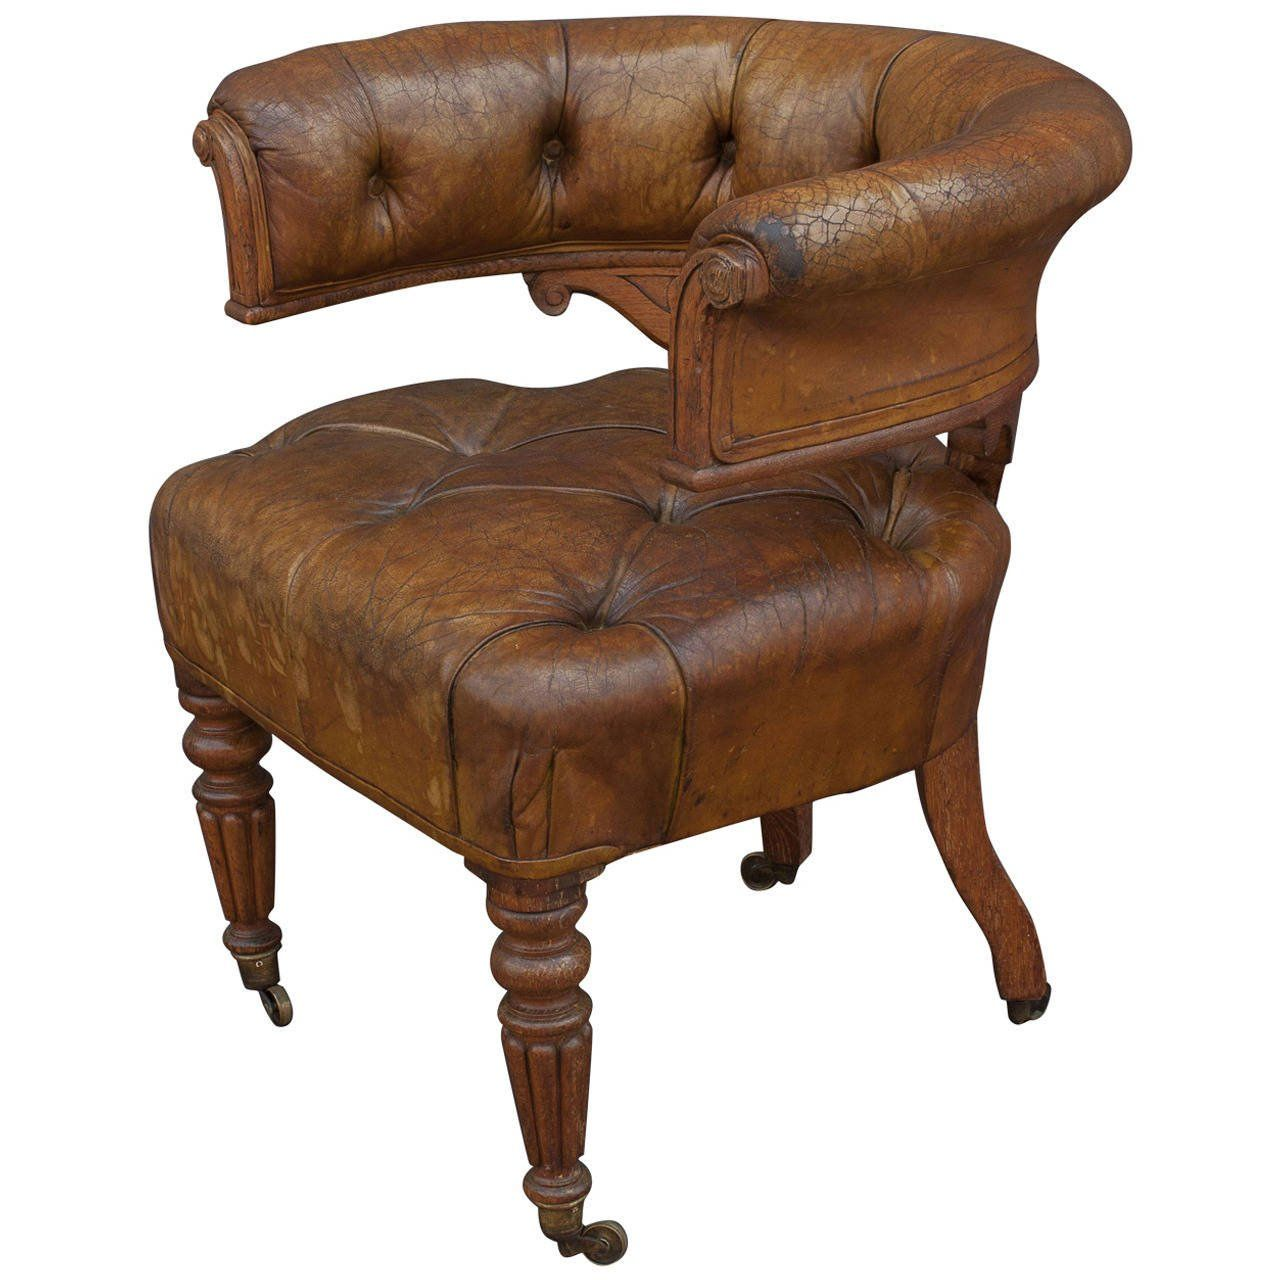 2018 Antique Leather Desk Chair - Best Cheap Modern Furniture Check more at  http:/ - 2018 Antique Leather Desk Chair - Best Cheap Modern Furniture Check